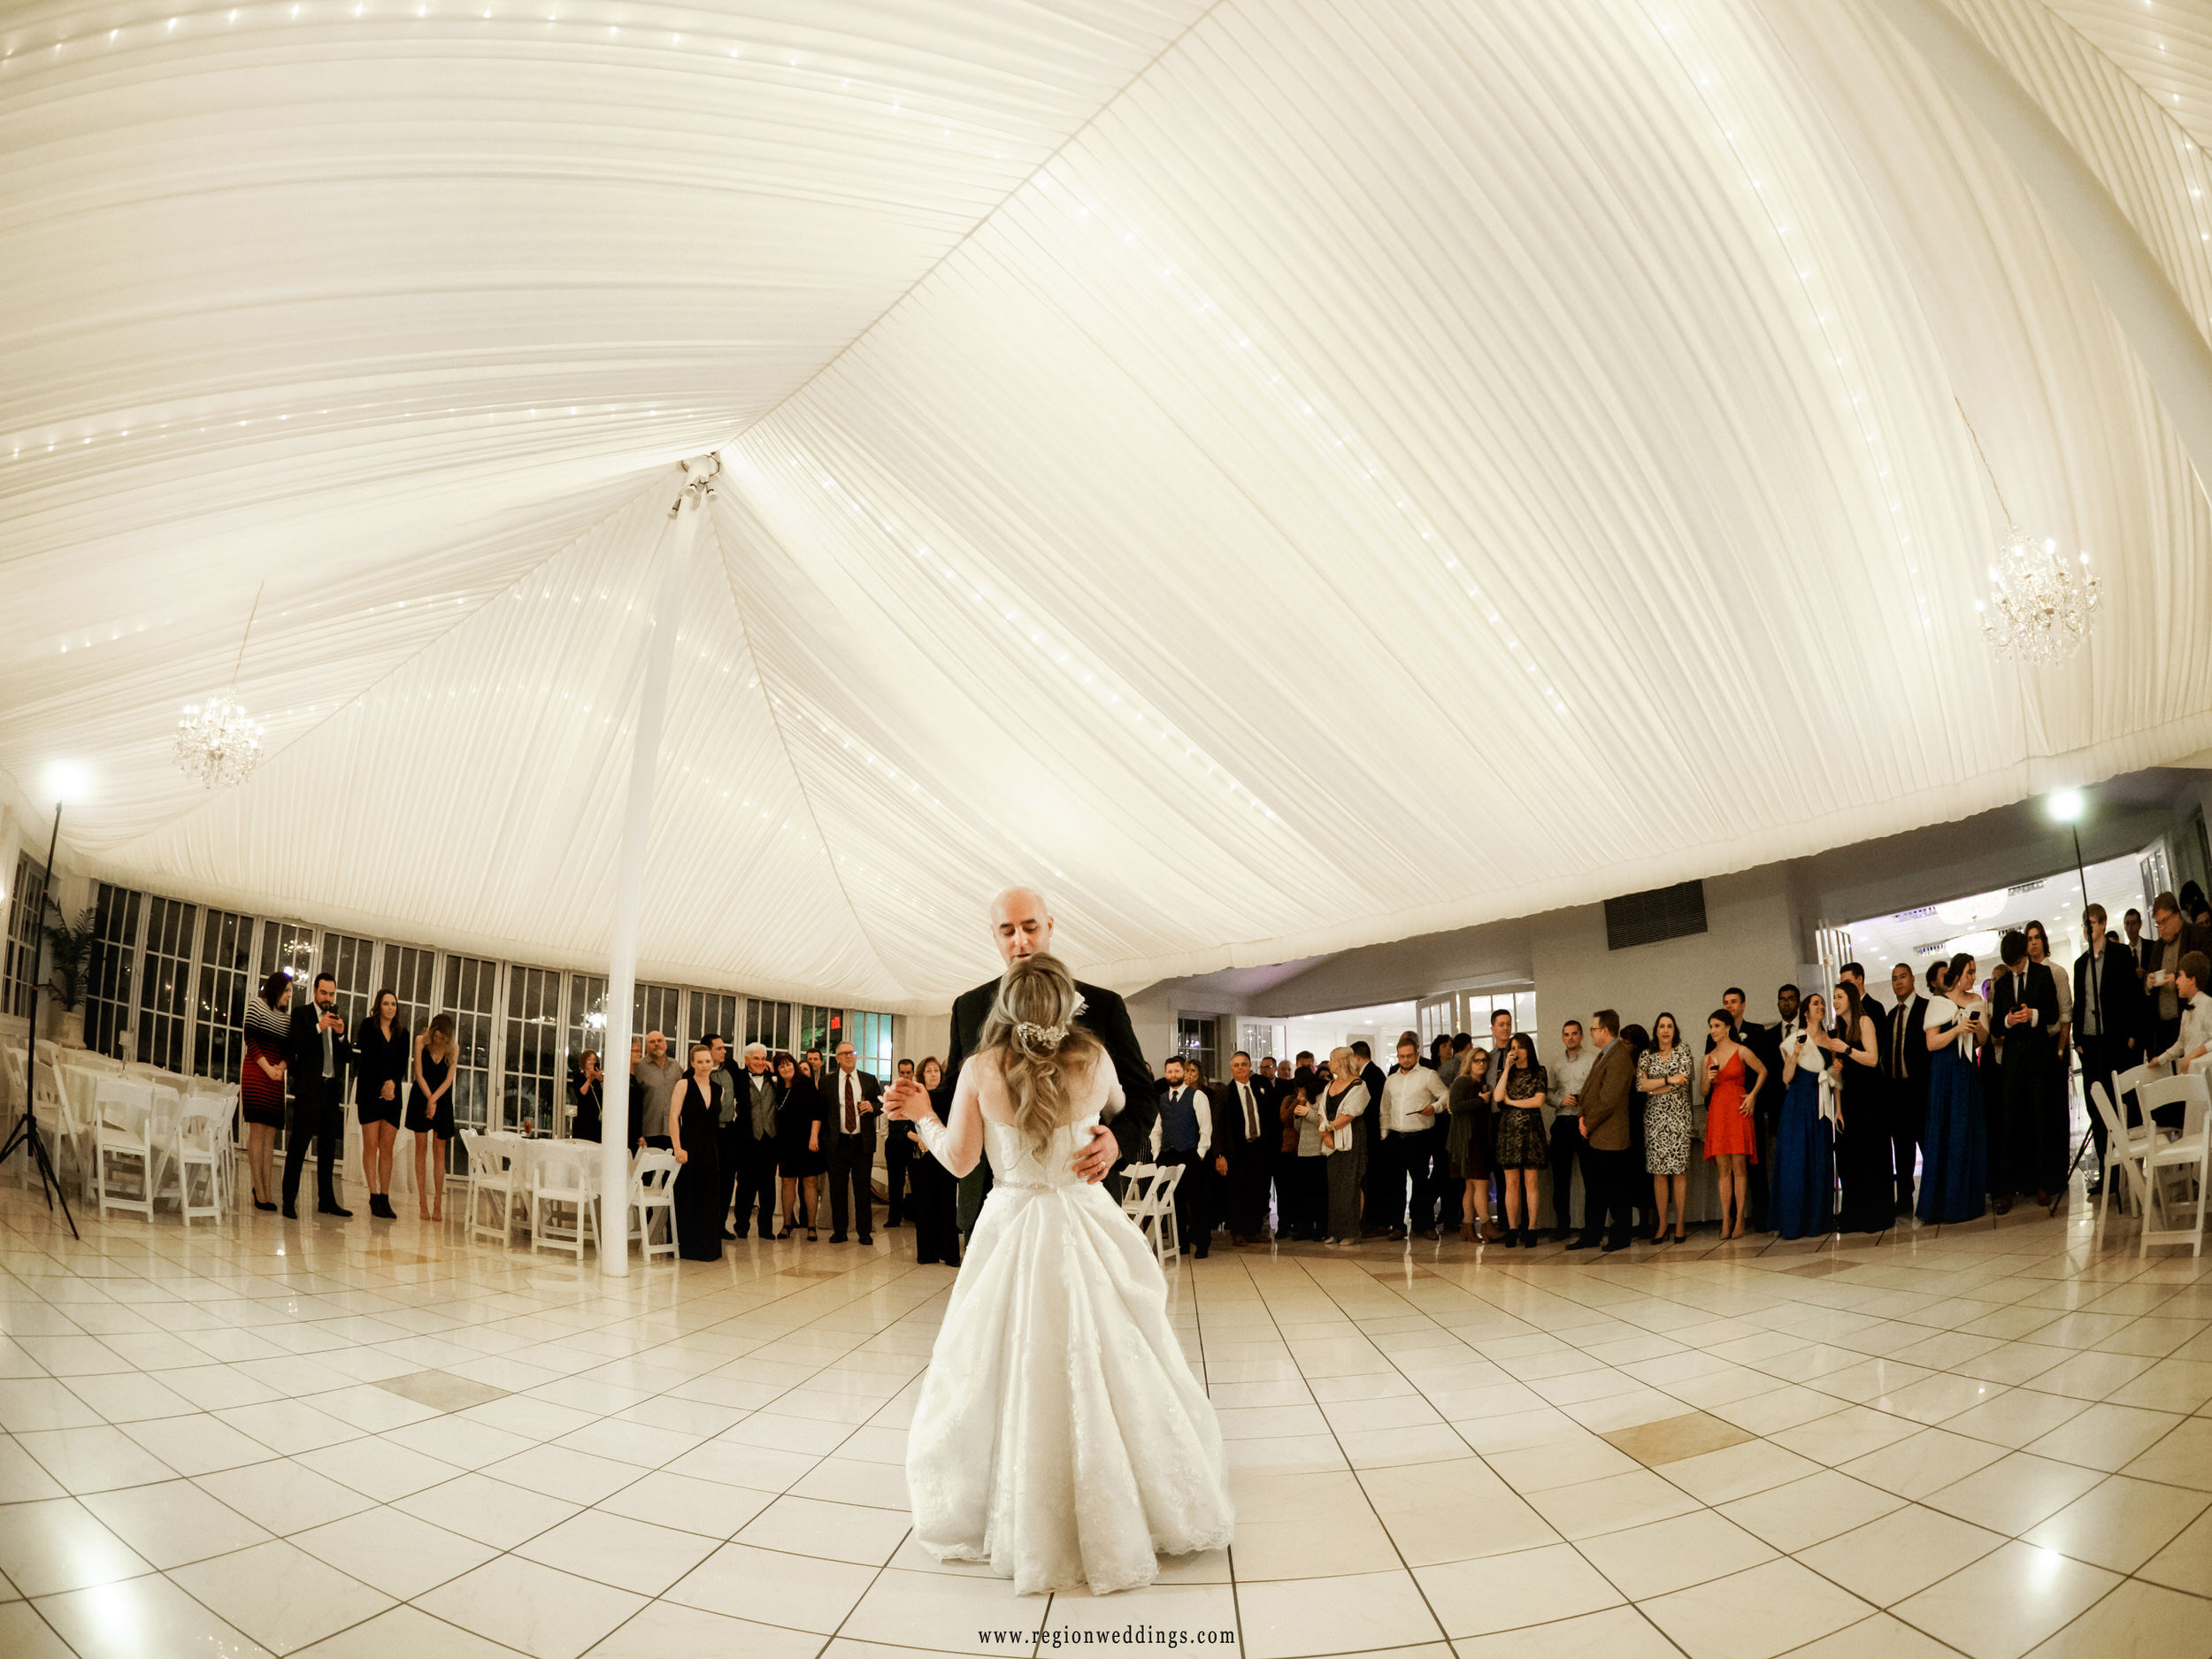 First dance for the newlyweds as friends and family surround them on the dance floor at Chateau Bu-Sché.